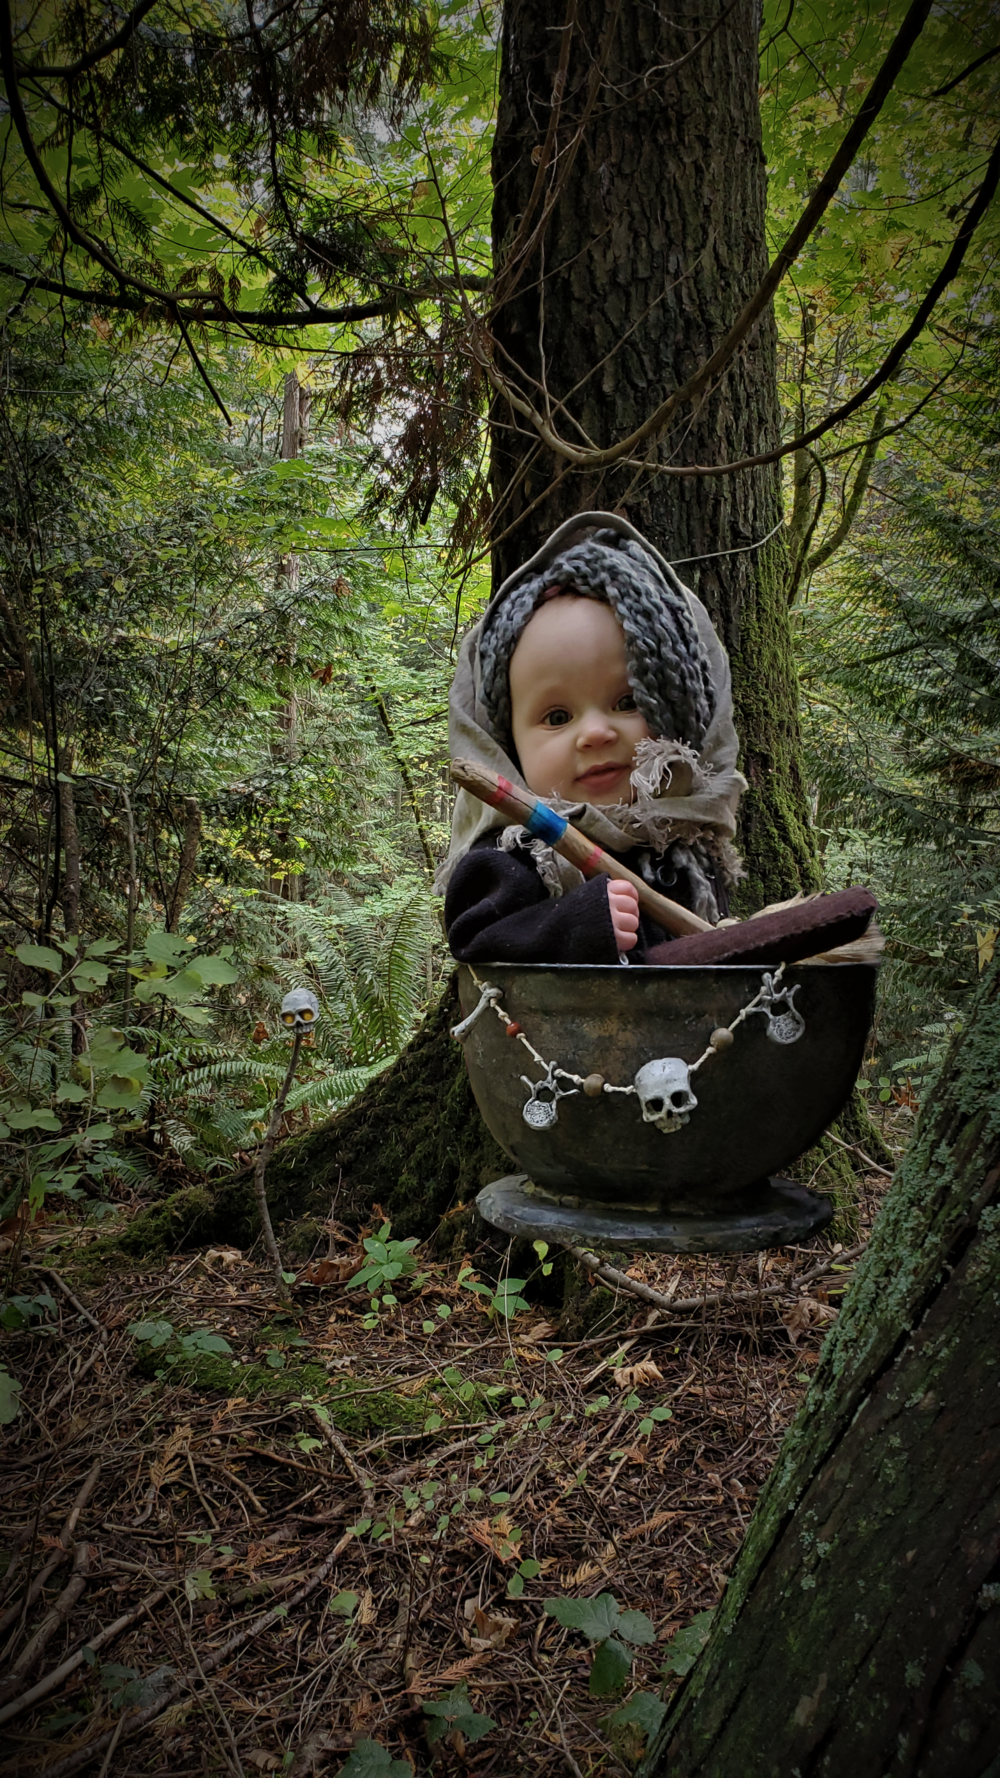 Baby Baba Yaga flying through the woods in her mortar